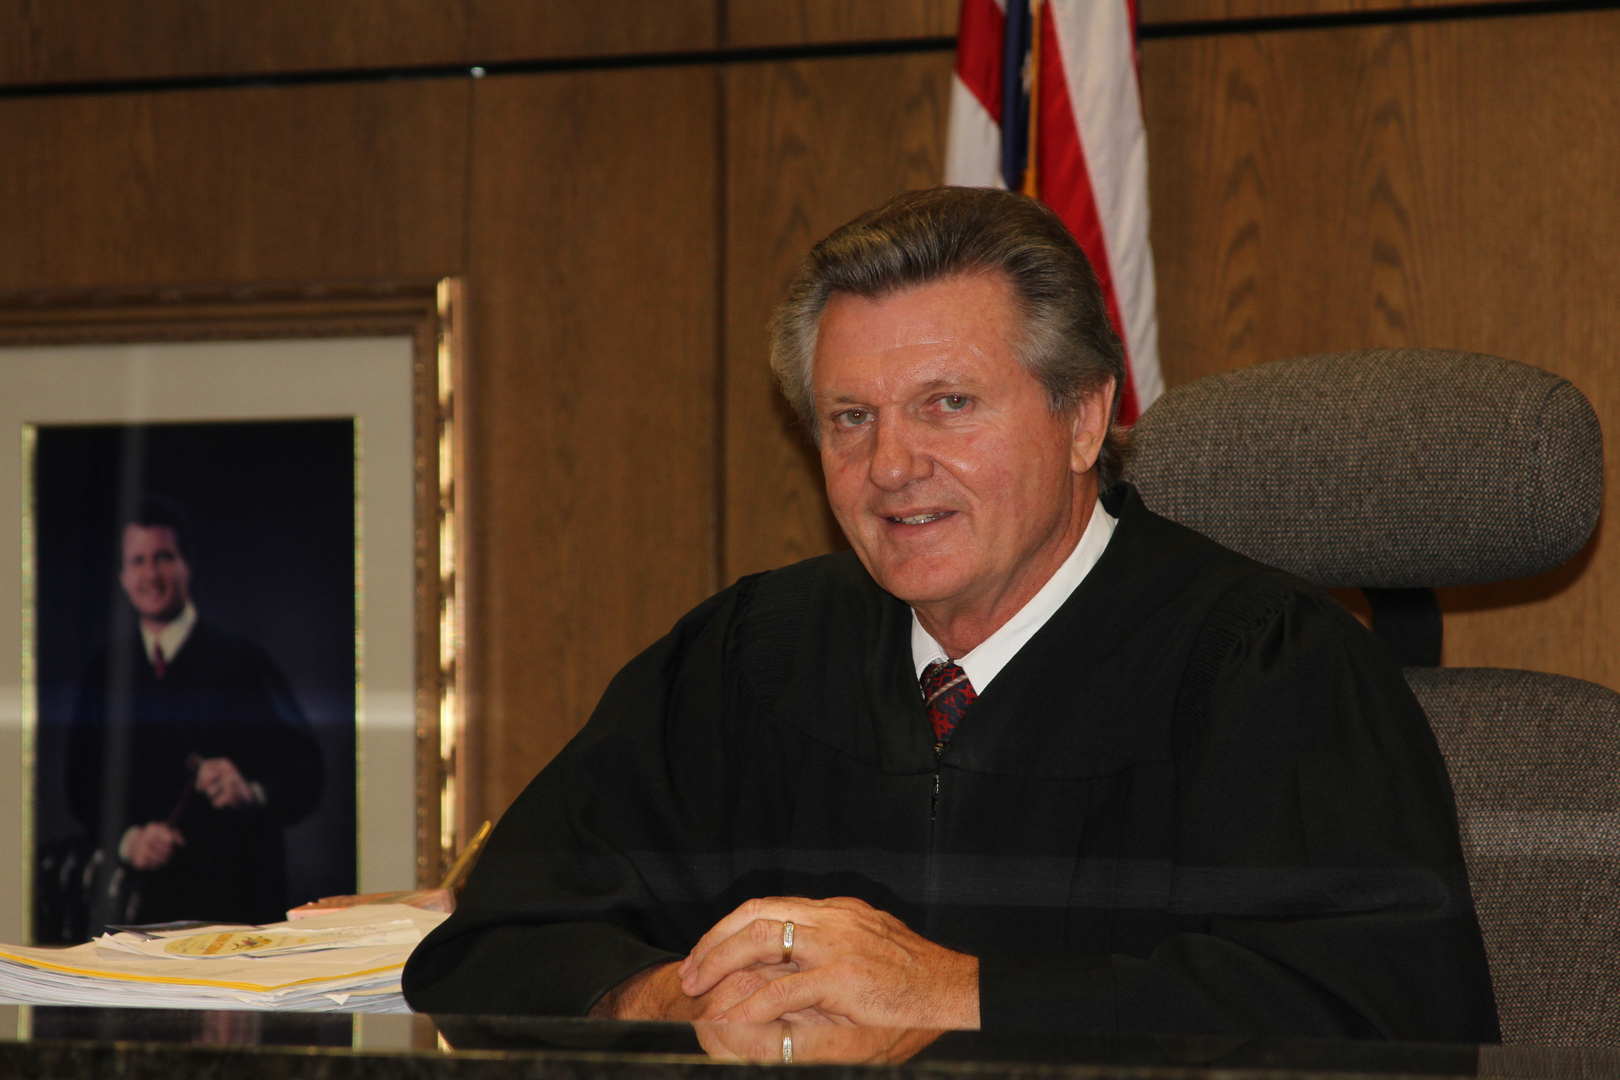 Judge George Risner - Pasadena, Texas